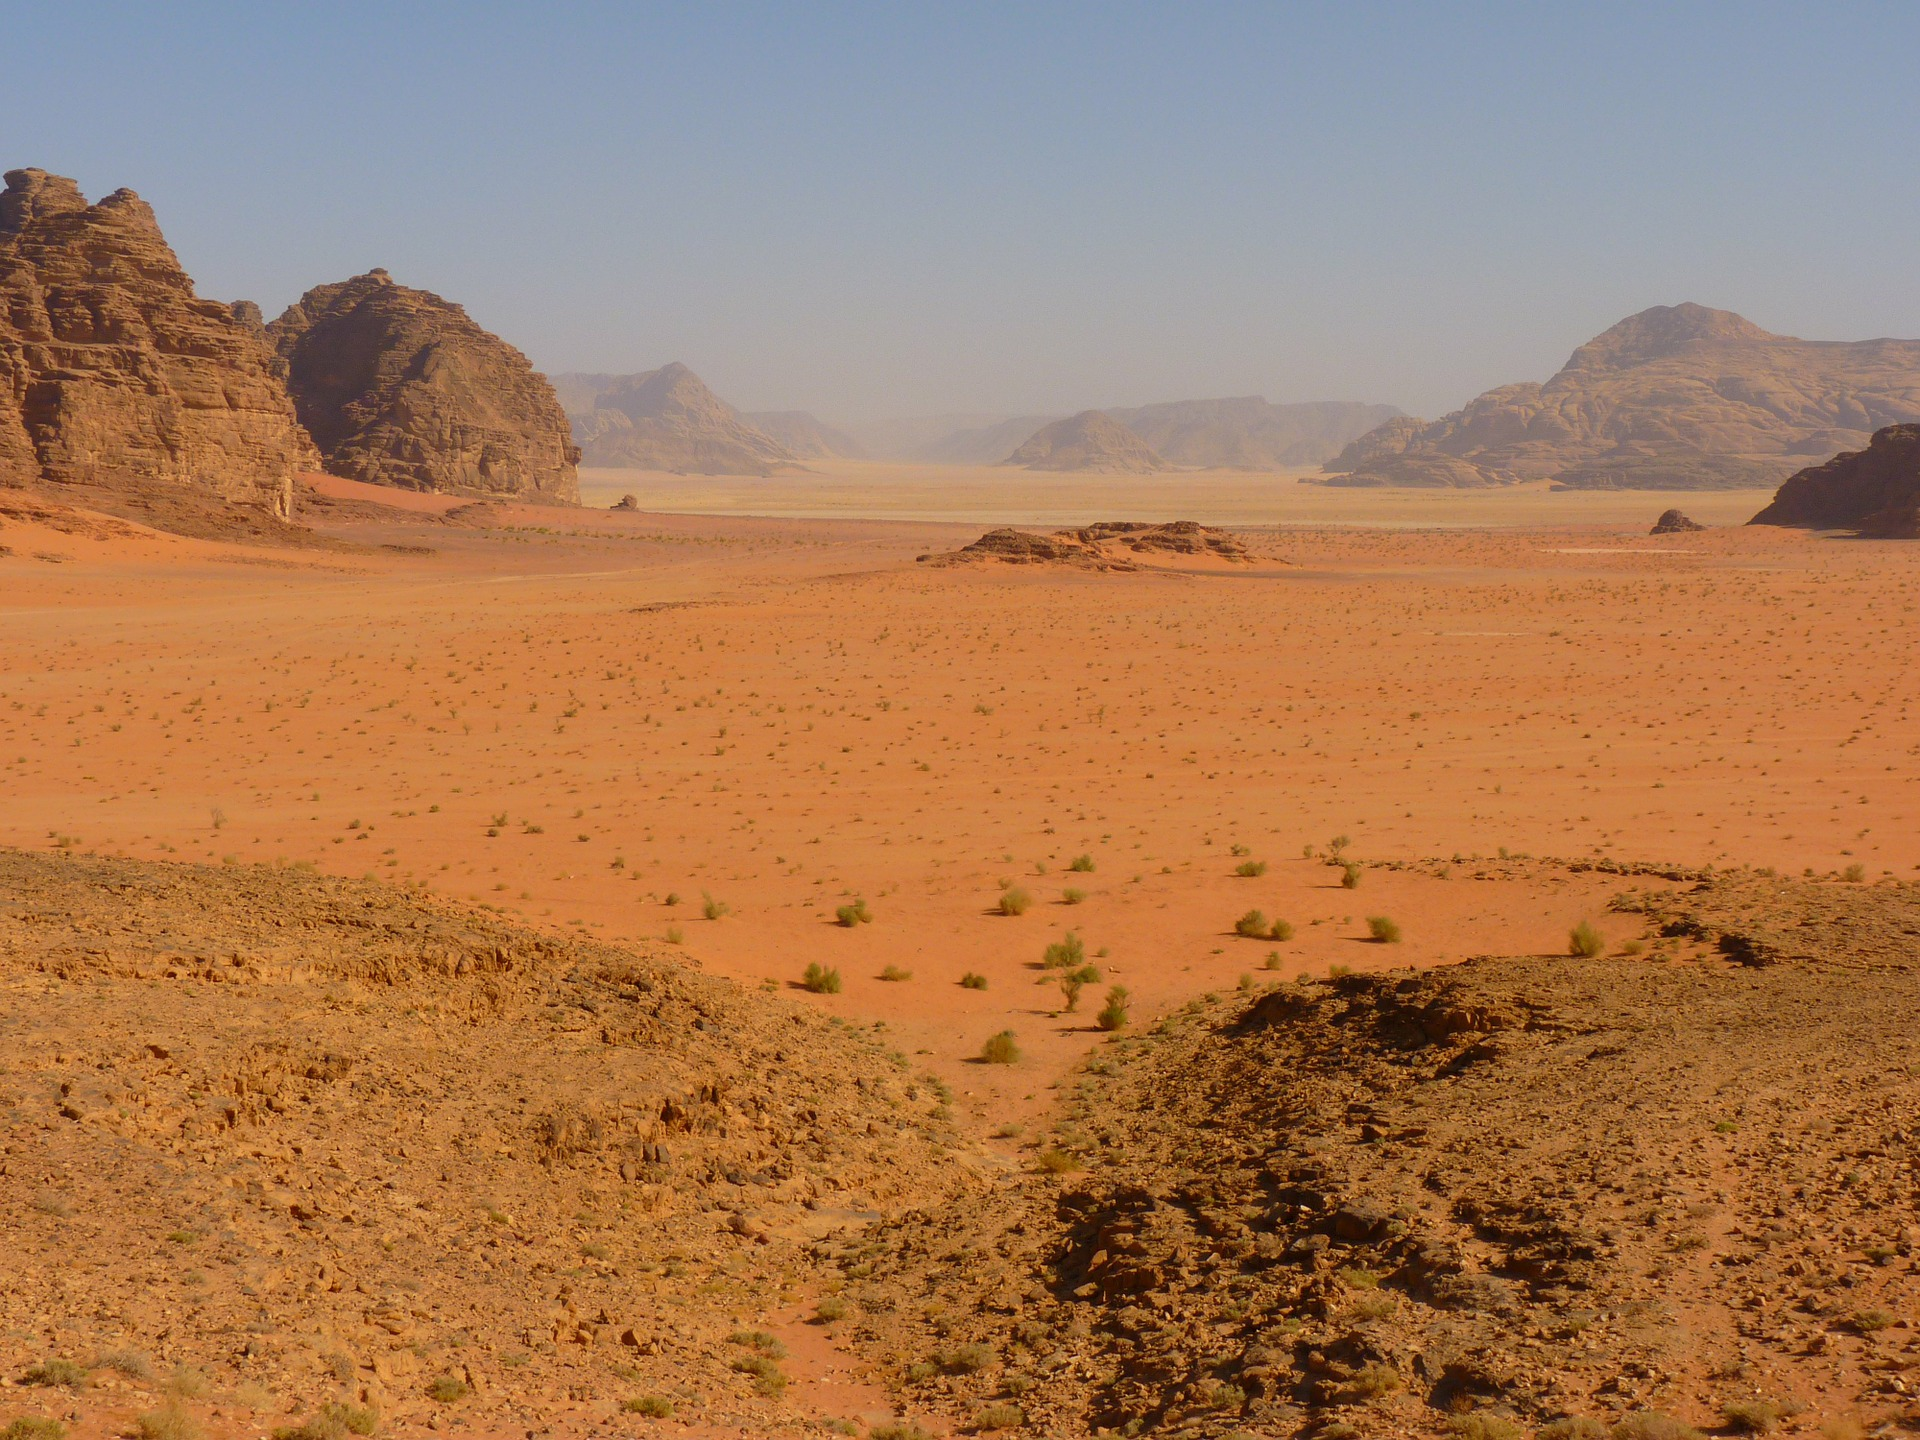 Jordan Uncovered - Wadi Rum, Jordan